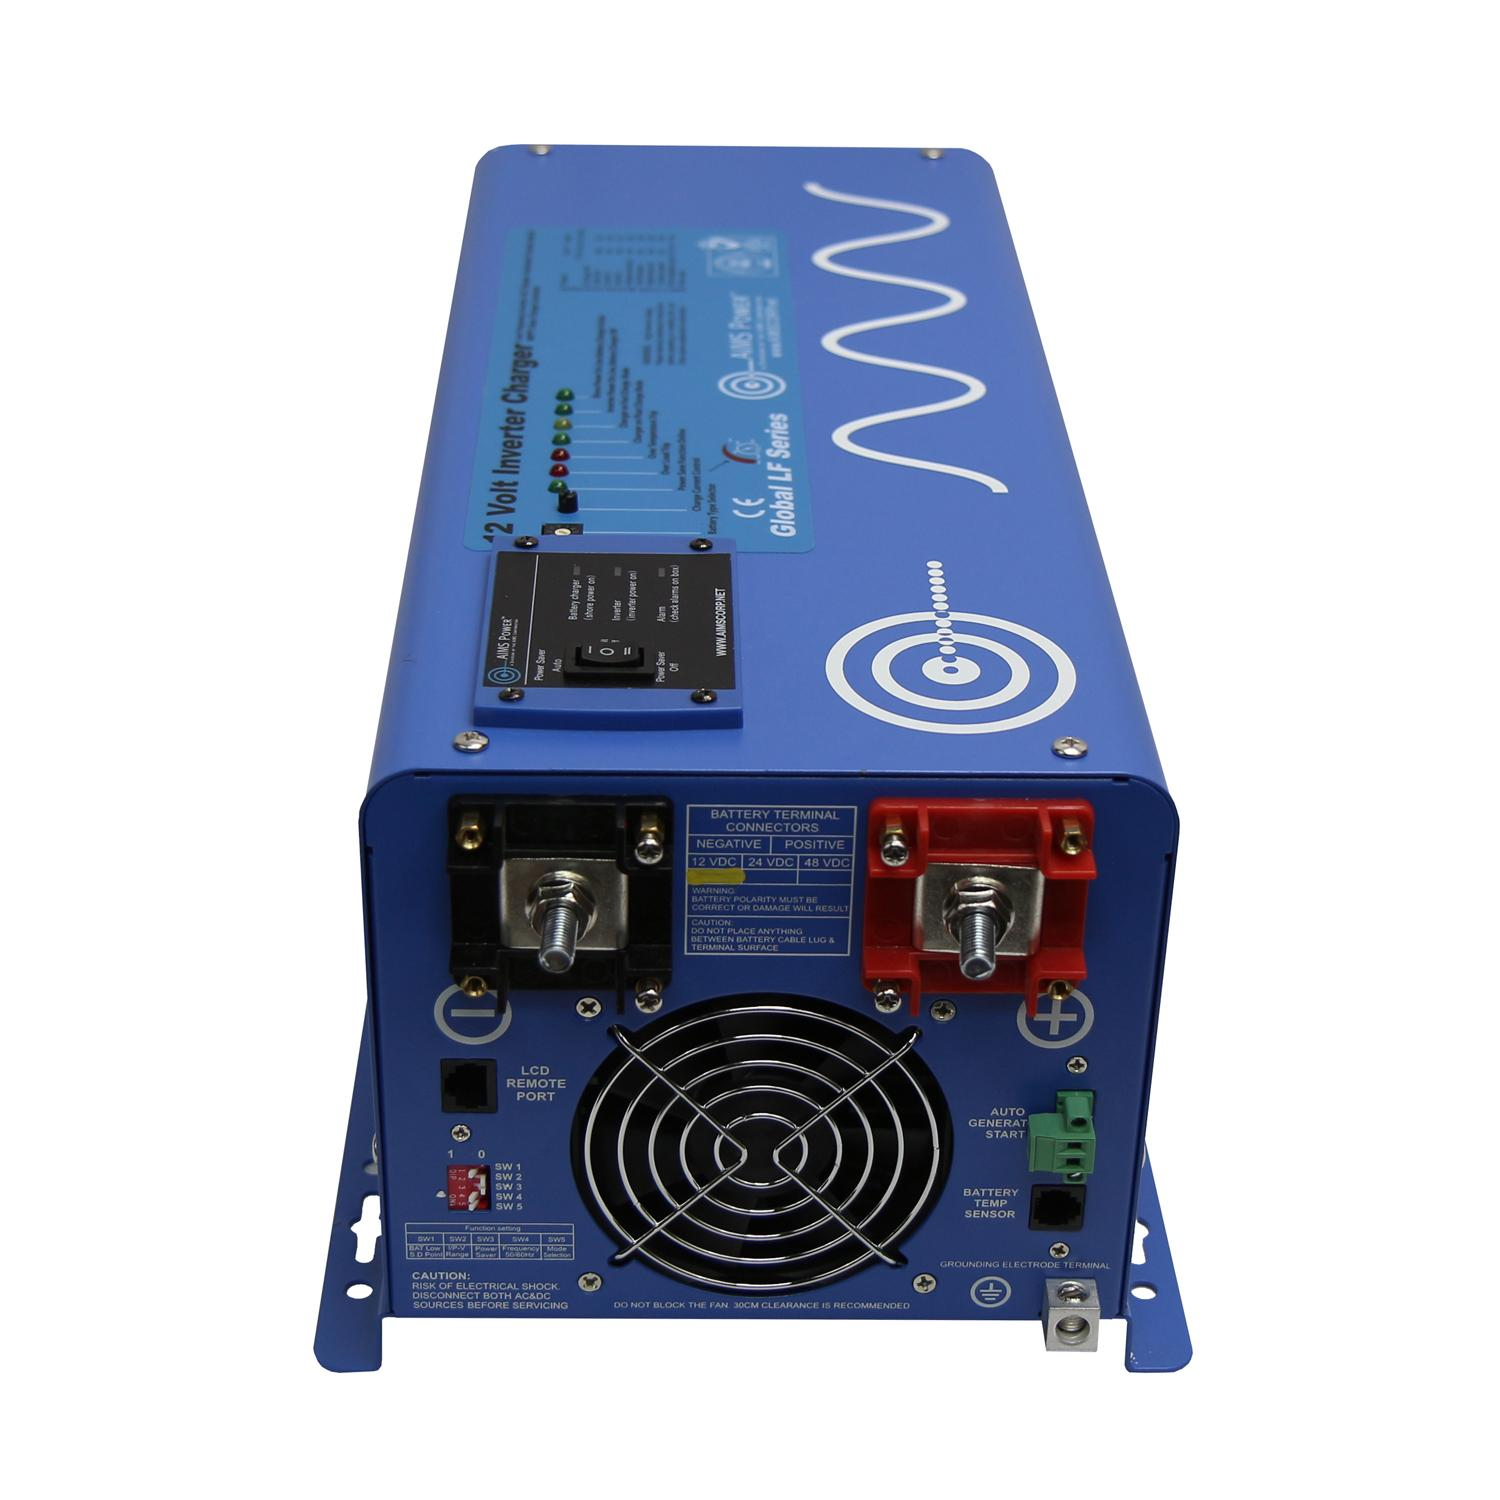 Aims Power 3000 Watt 12v Pure Sine Inverter Charger W Ats Control Panel Wiring Diagram Genset Controller View Larger